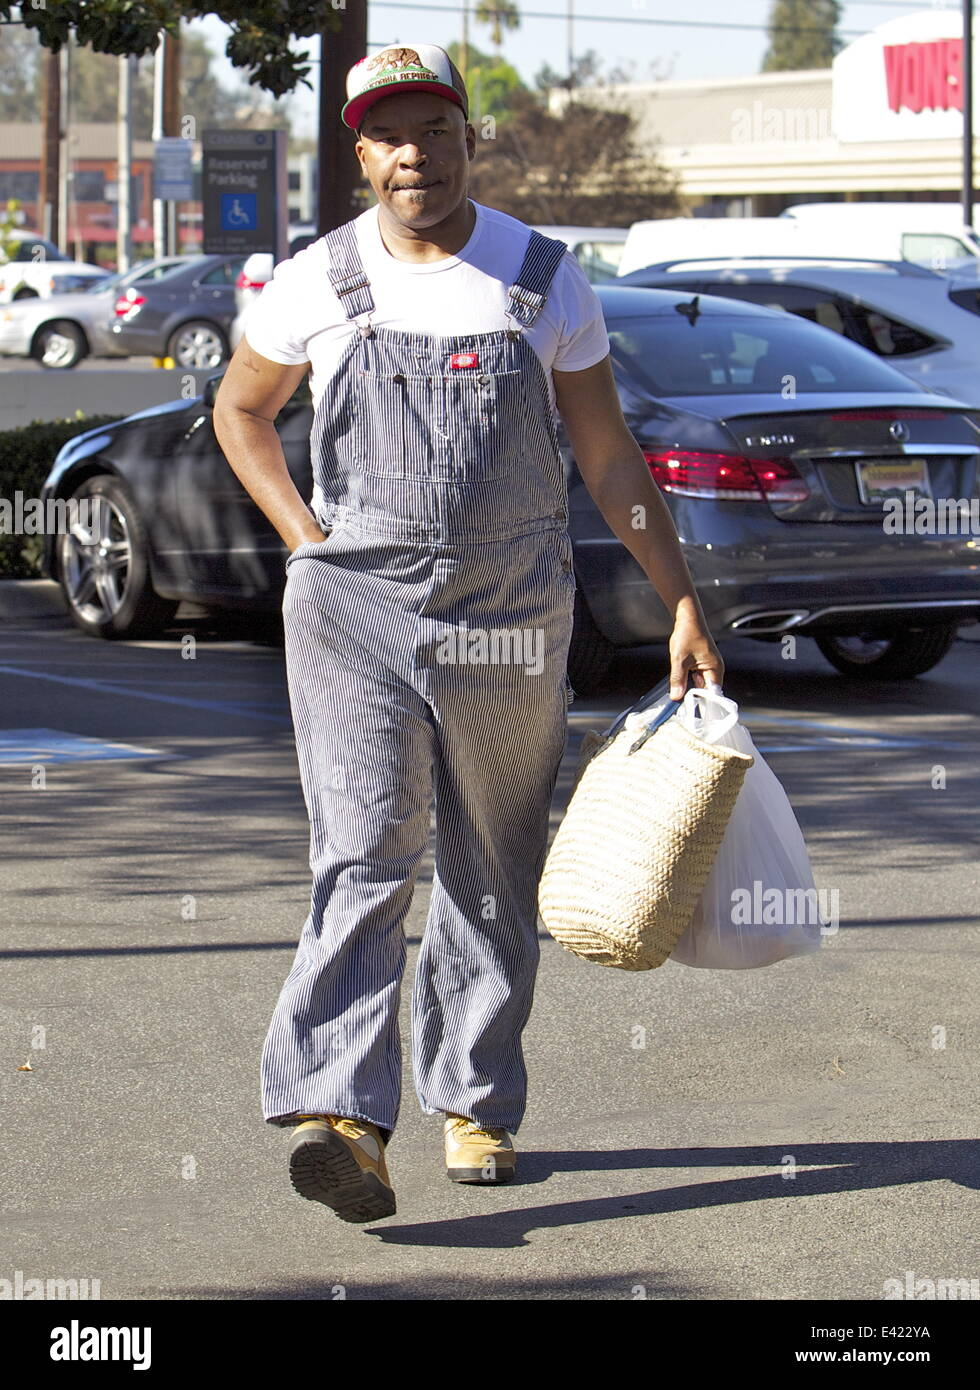 David Alan Grier leaves a Farmers Market in Studio City wearing Farmer's overalls  Featuring: David Alan Grier - Stock Image